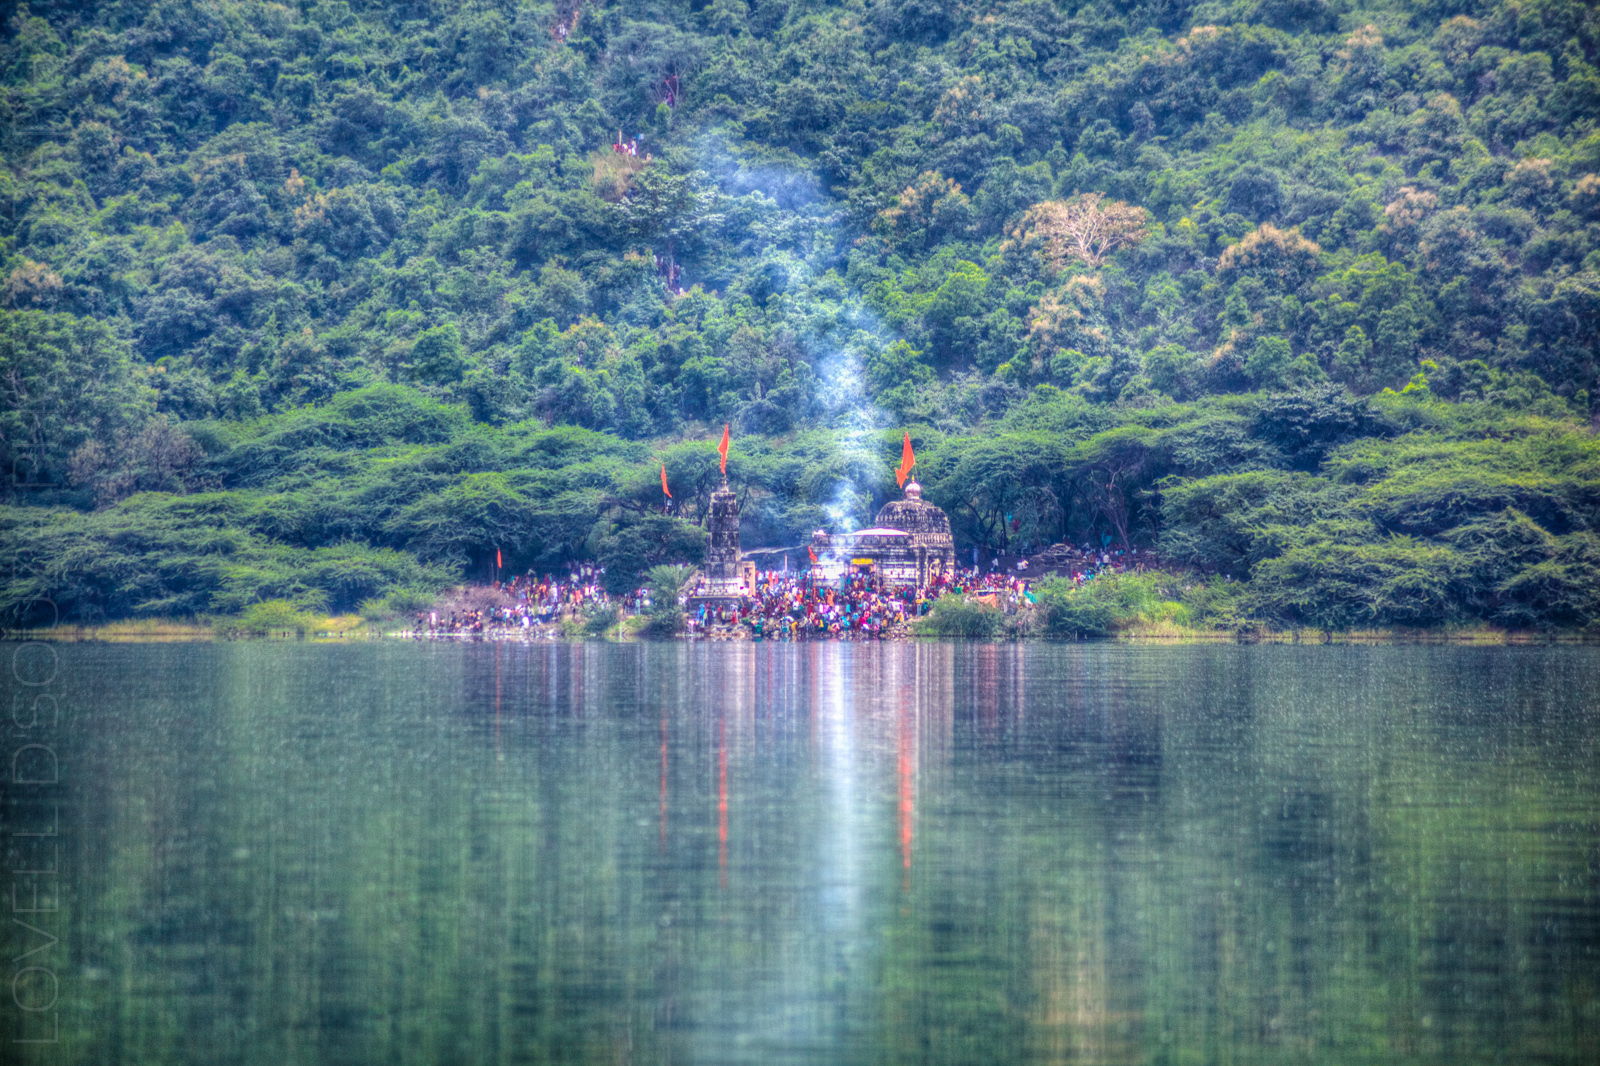 Kamalja Devi Temple from a distance, at the Lonar lake